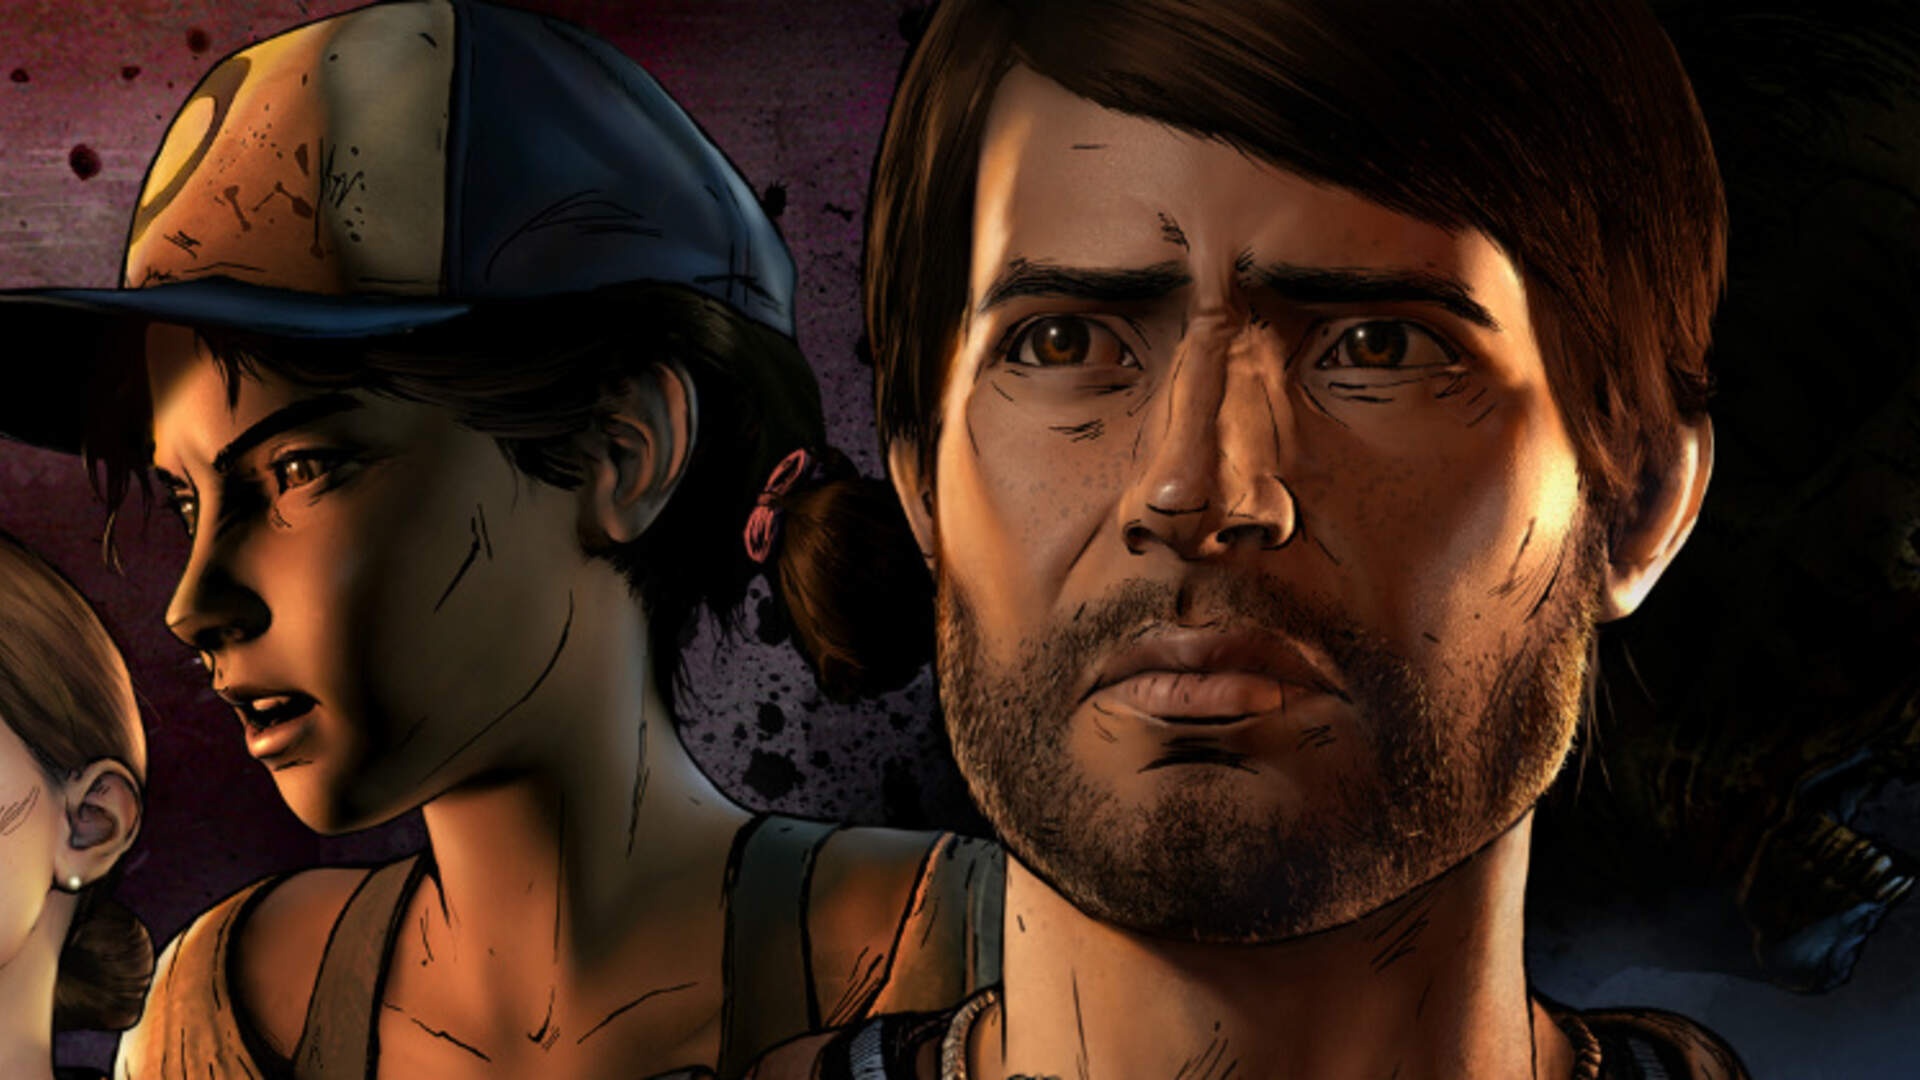 The Walking Dead Season 3 Premieres With Two Episodes on Dec 20